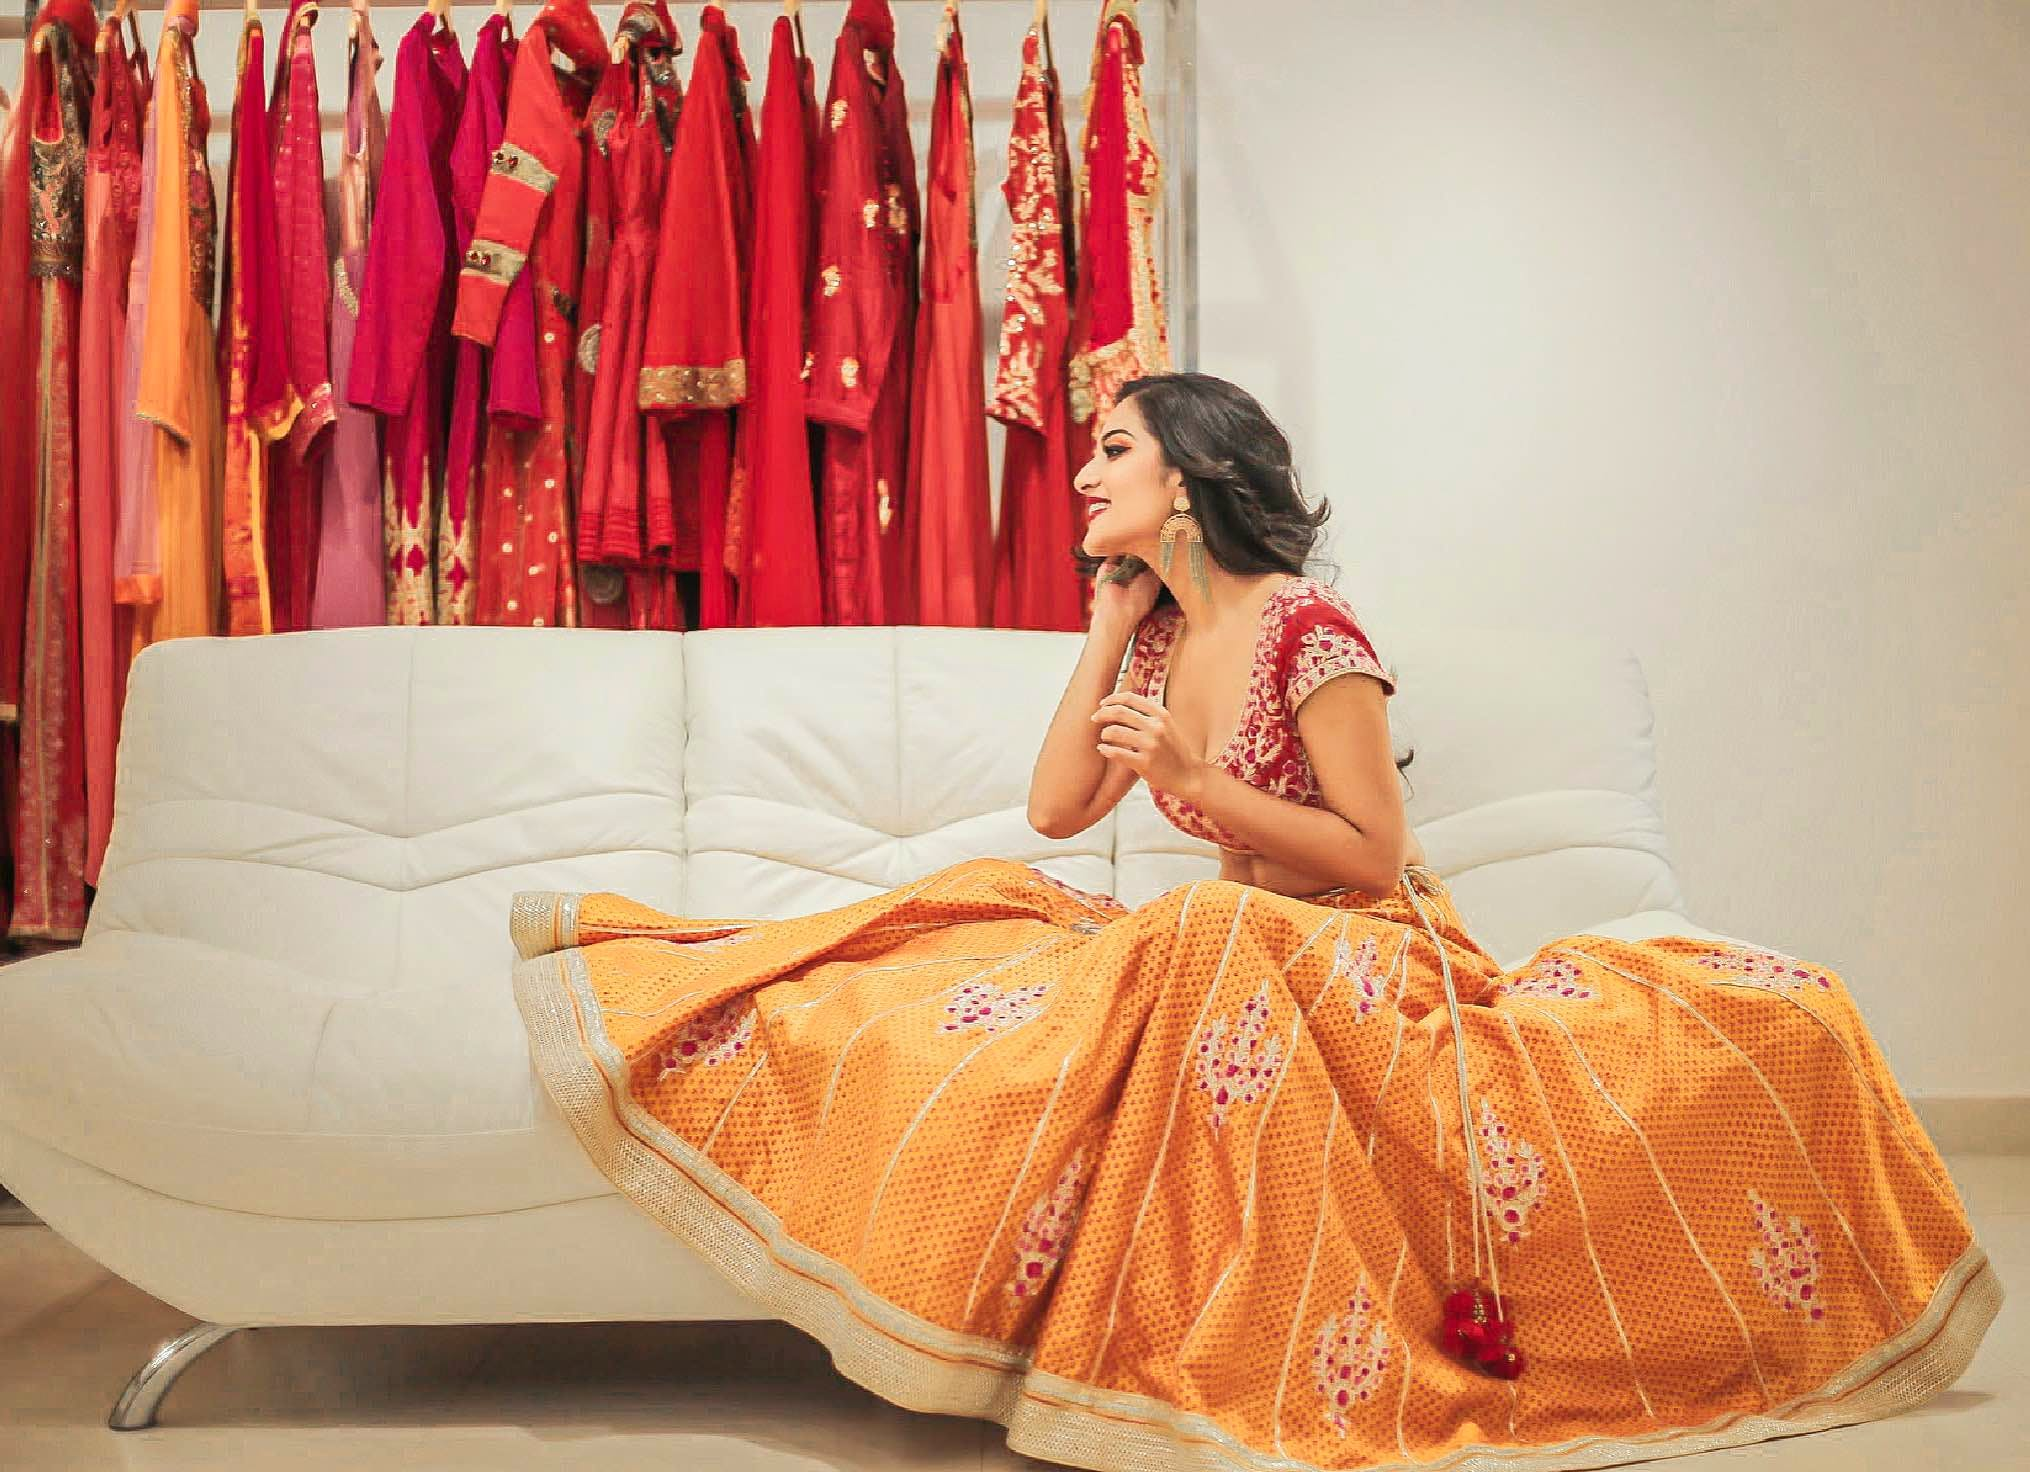 Orange,Clothing,Yellow,Sari,Formal wear,Dress,Peach,Pink,Fashion,Tradition